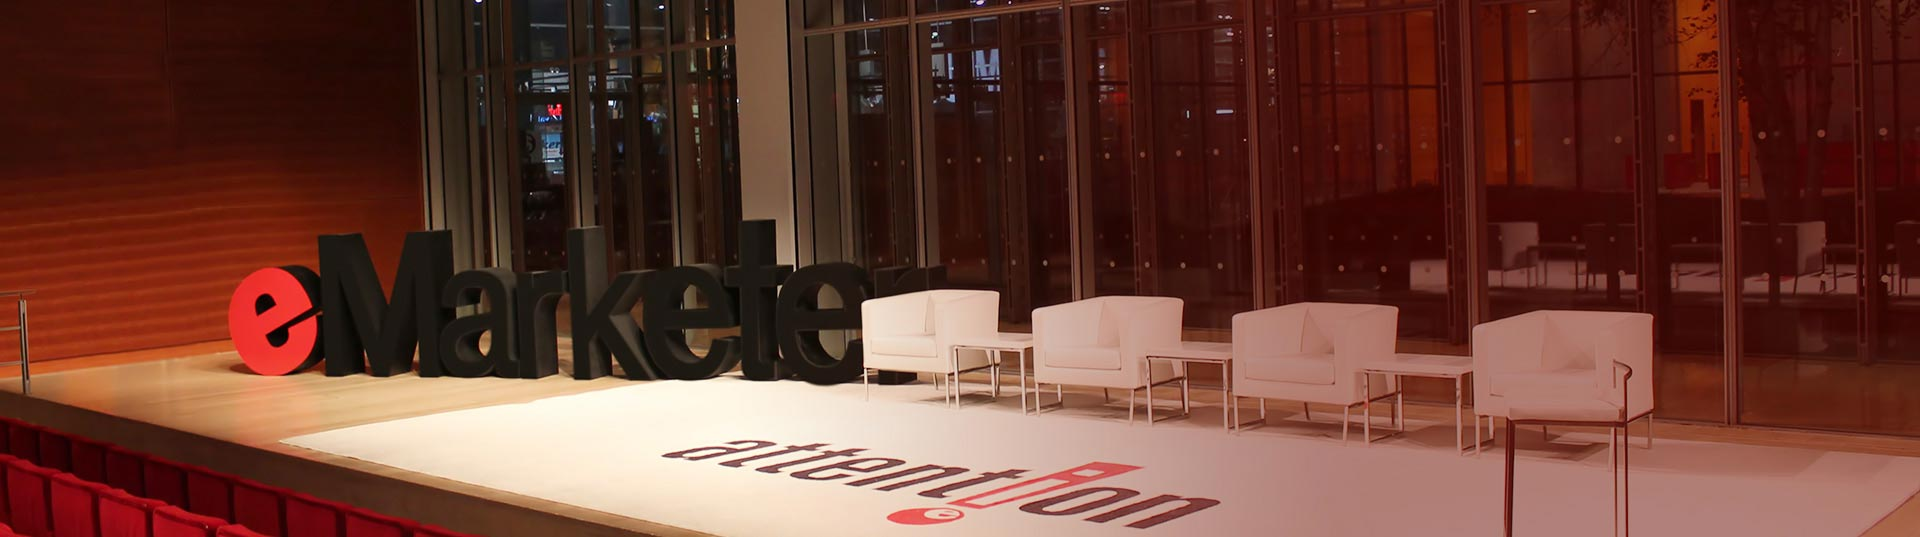 eMarketer Attention 2015 marketing conference times center meetings hospitality production fabrication and decor